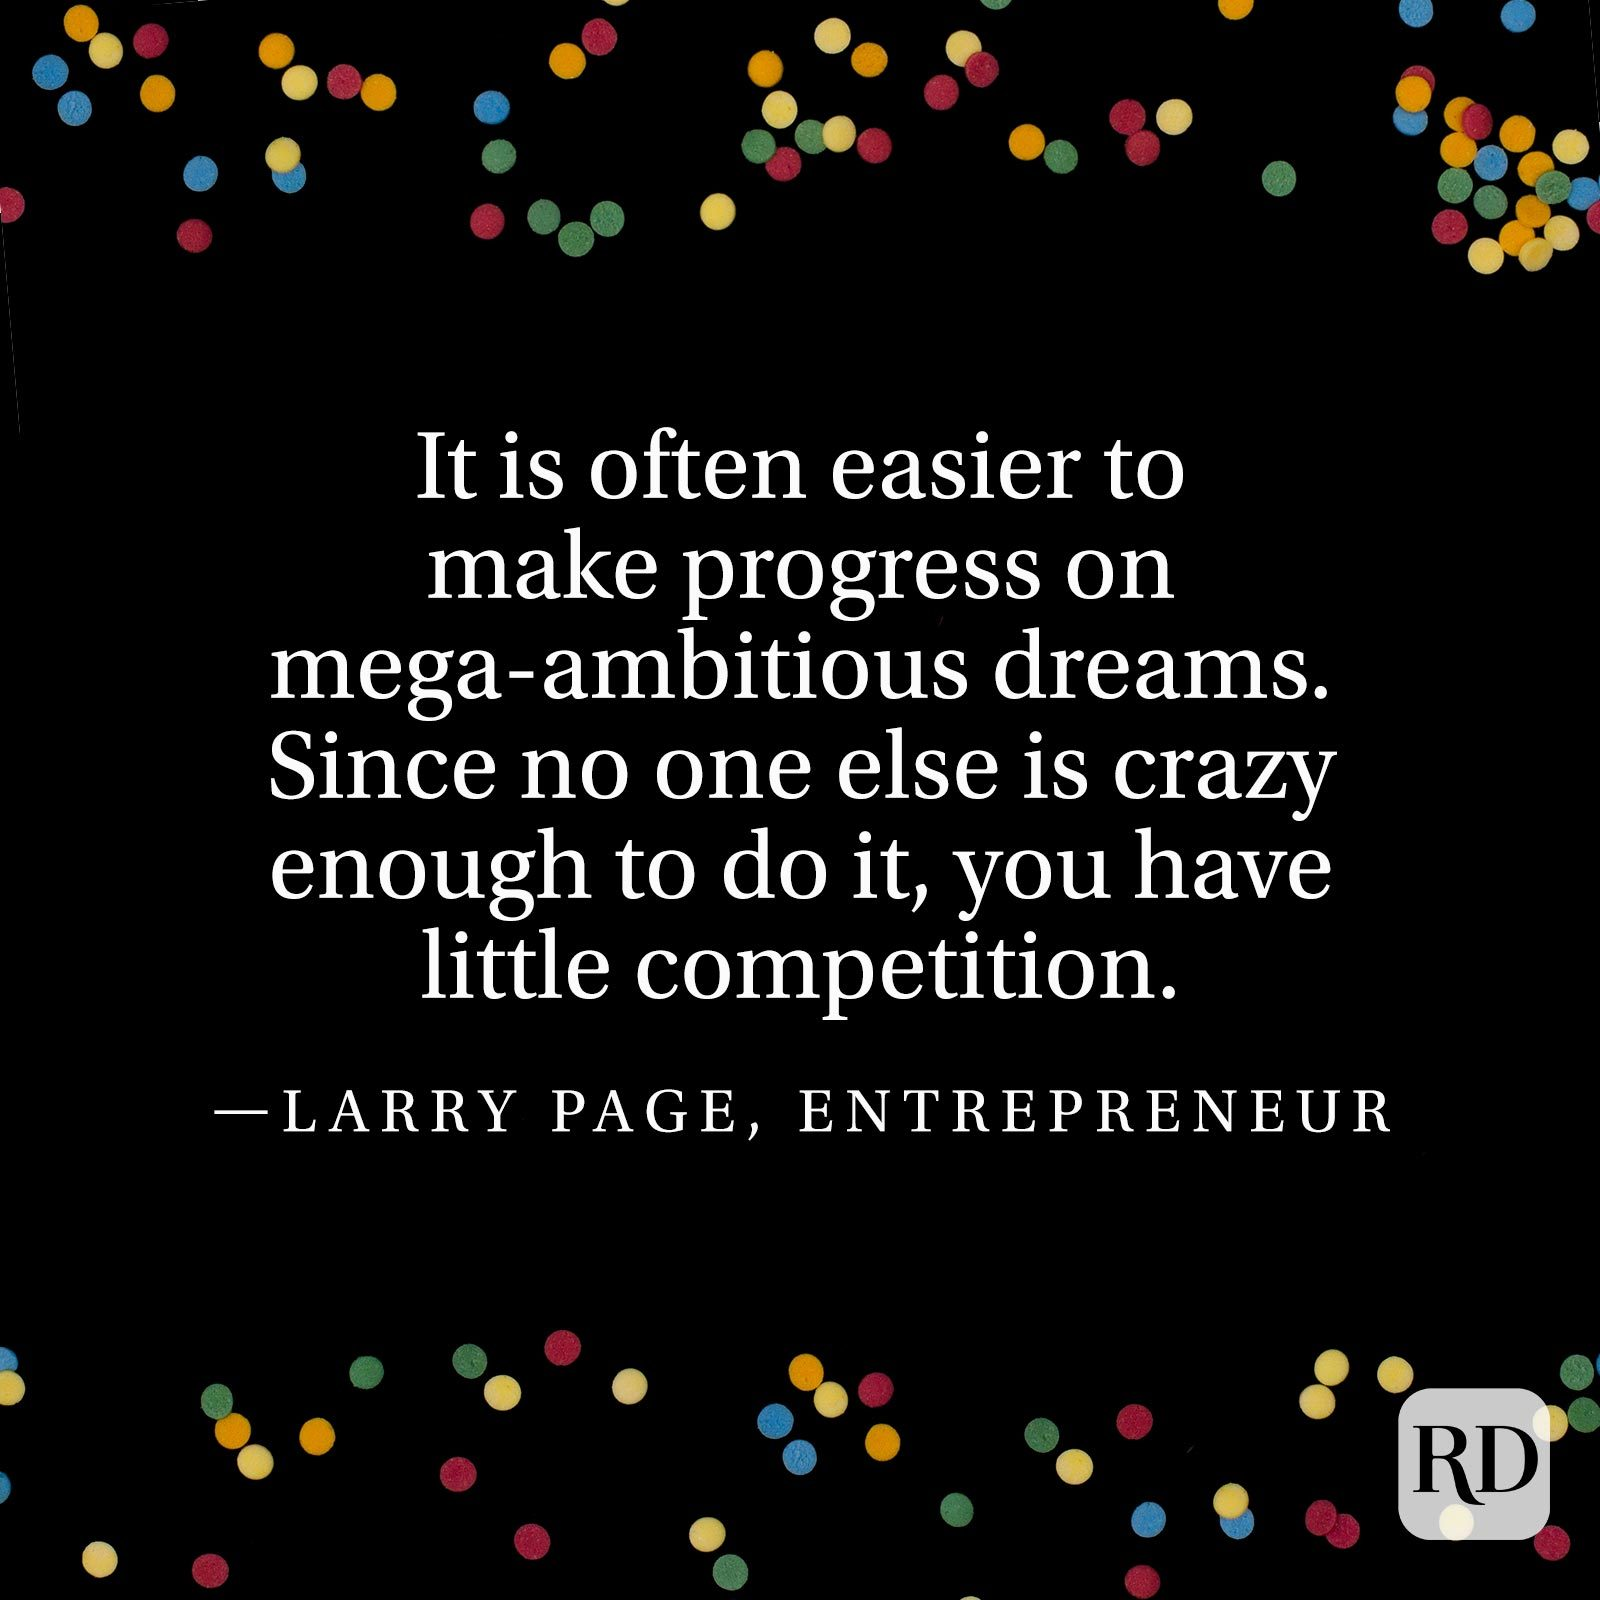 """It is often easier to make progress on mega-ambitious dreams. Since no one else is crazy enough to do it, you have little competition."" —Larry Page, entrepreneur"